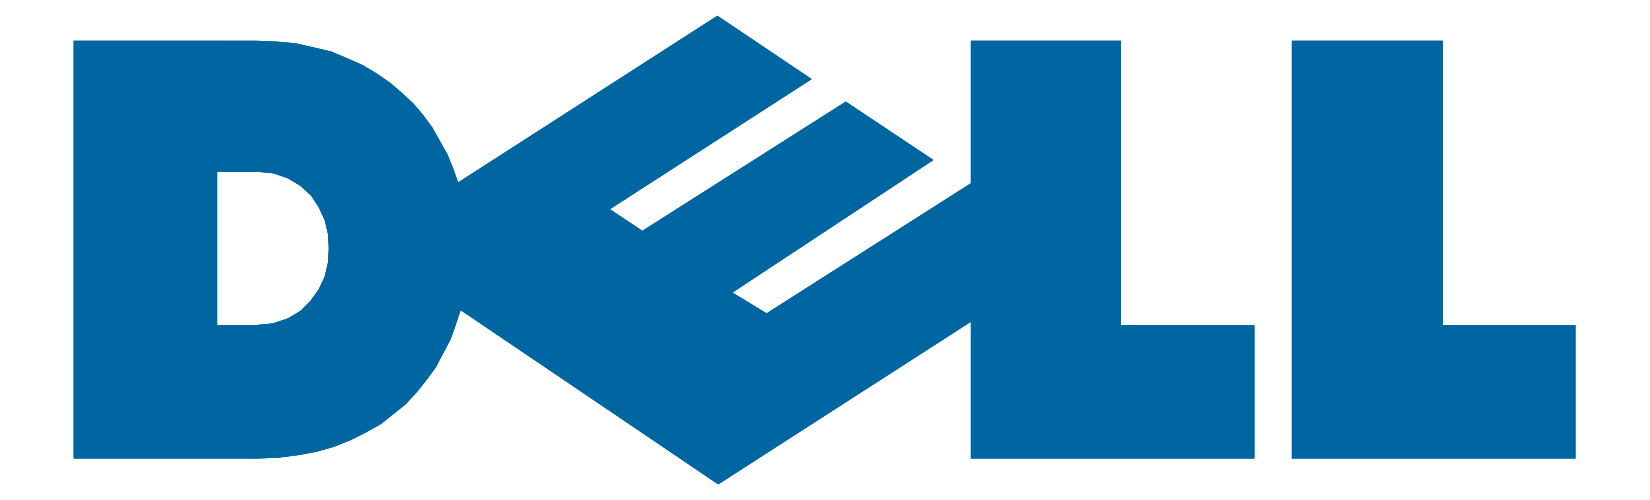 Dell logo clear background.png